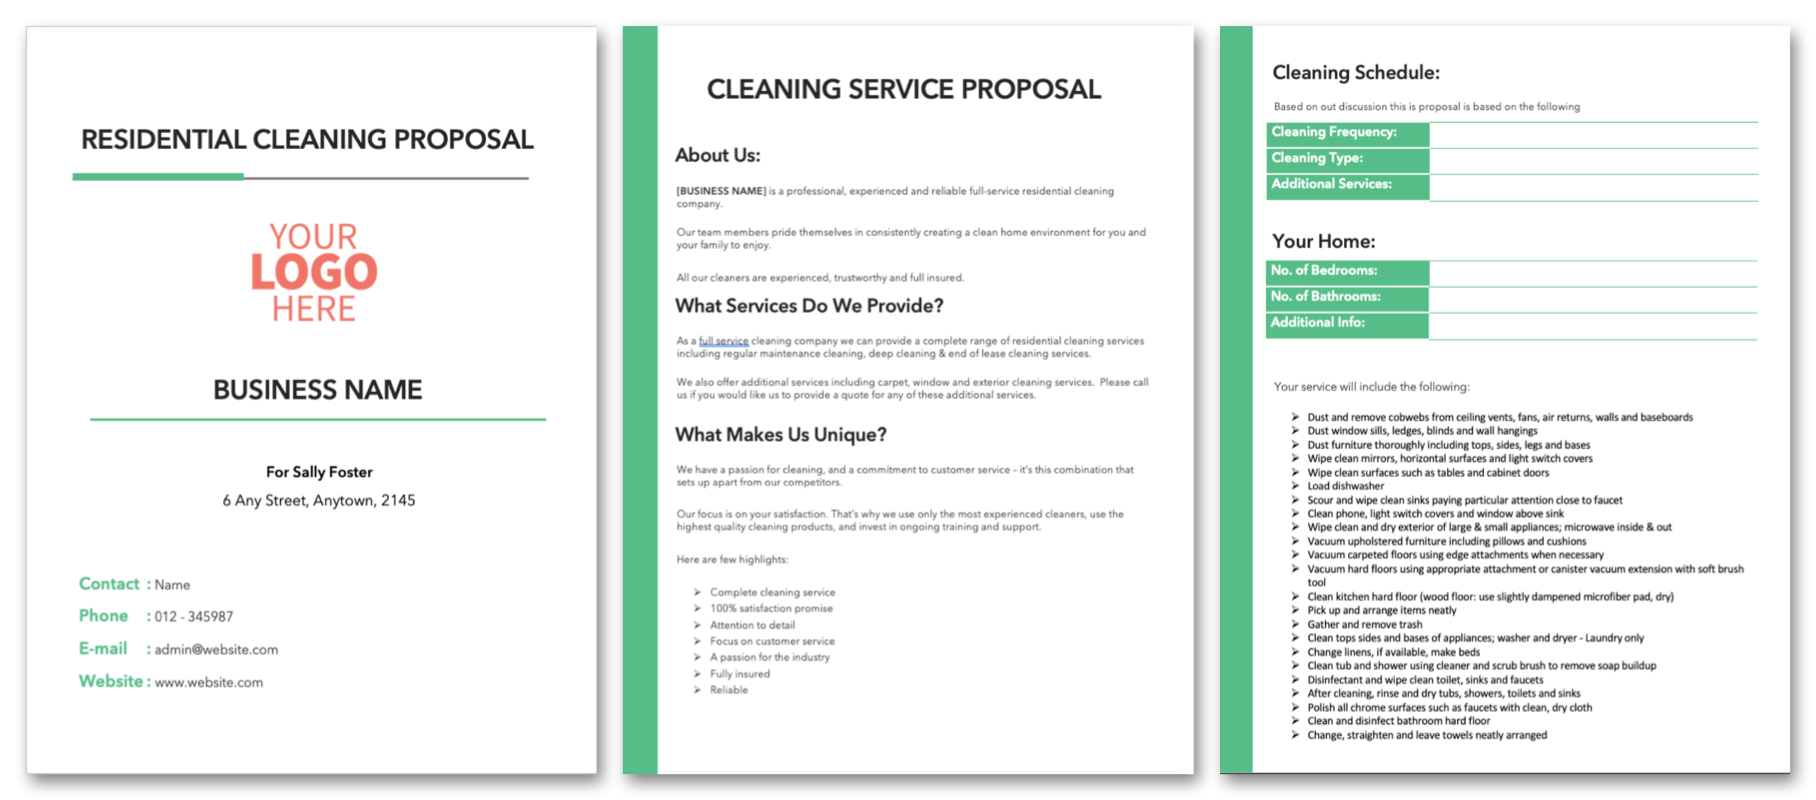 Residential Cleaning Proposal